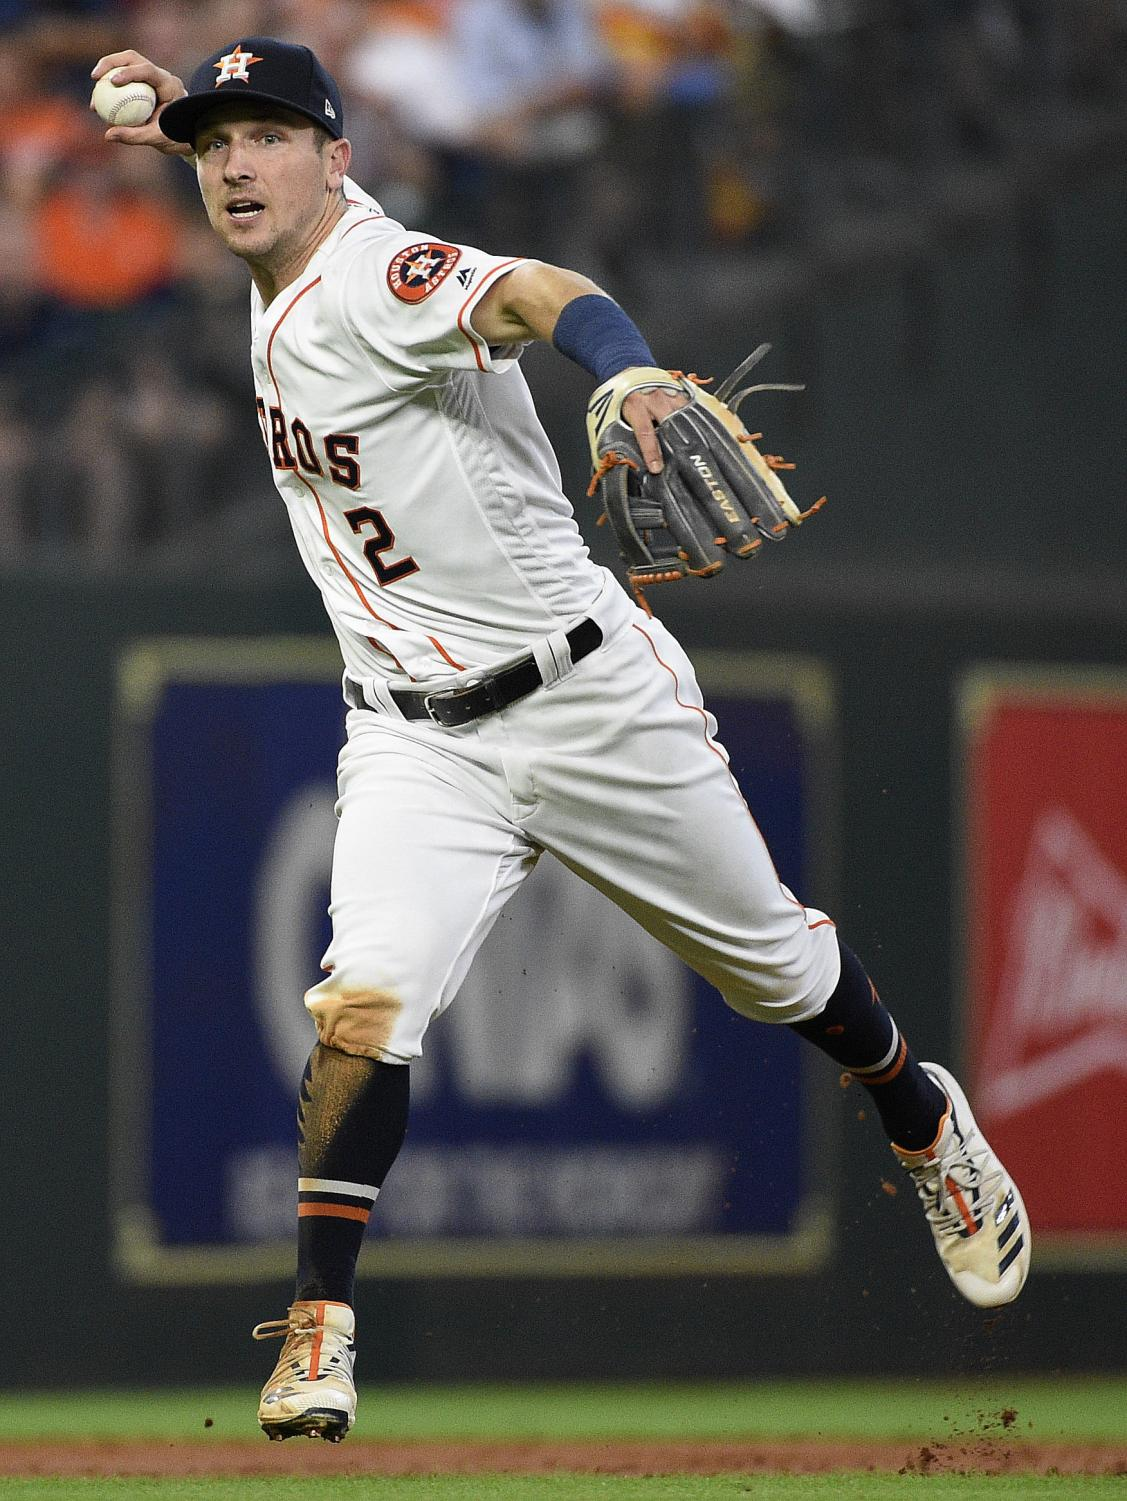 Houston Astros shortstop Alex Bregman throws out Milwaukee Brewers' Lorenzo Cain during the third inning of a baseball game Wednesday, June 12, 2019, in Houston. (AP Photo/Eric Christian Smith)